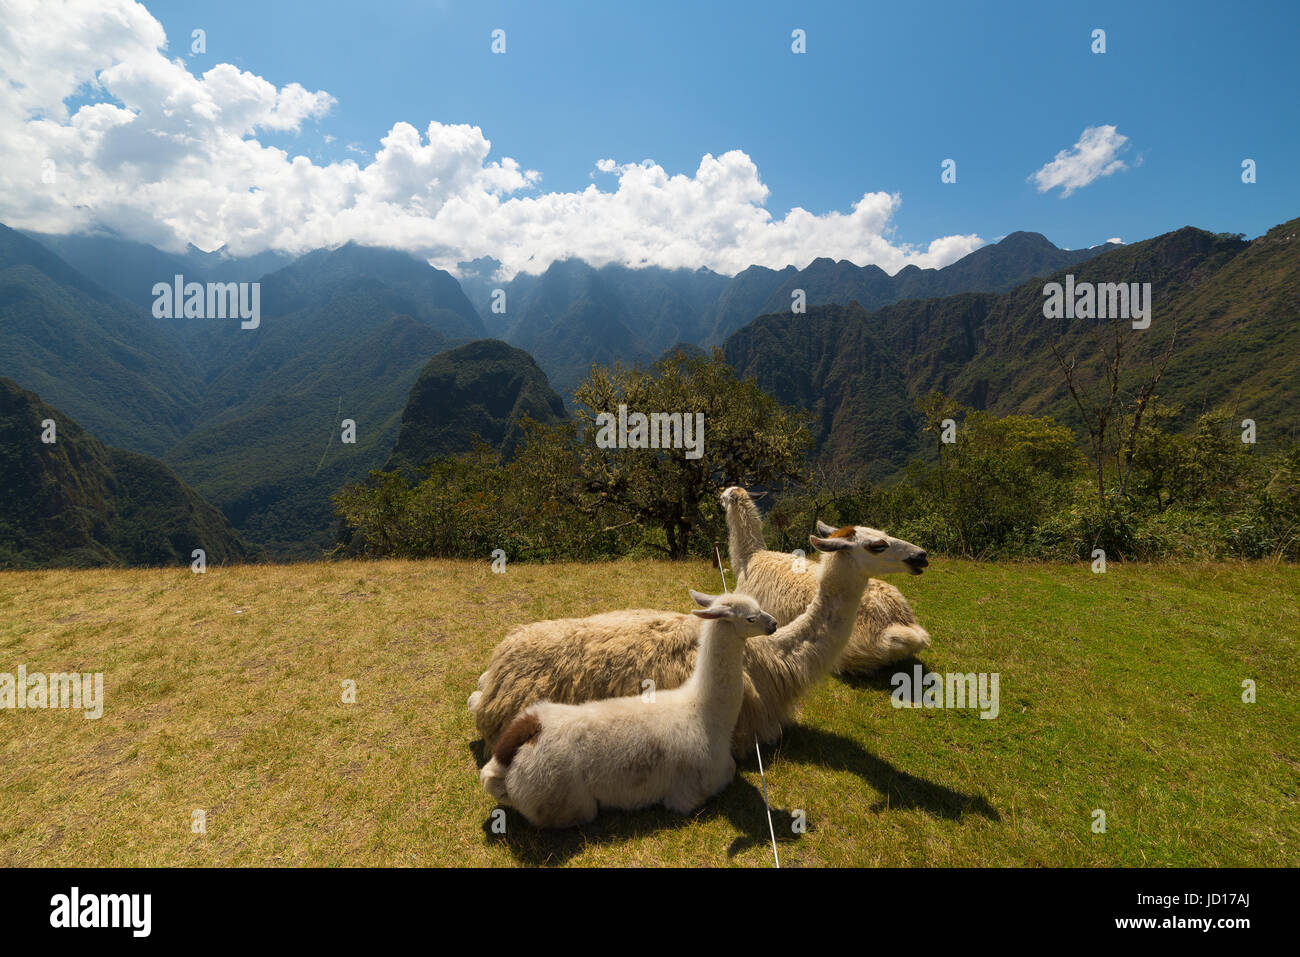 Llamas grazing and lying down on the sacred grass of Machu Picchu. Wide angle view with scenic sky. Stock Photo